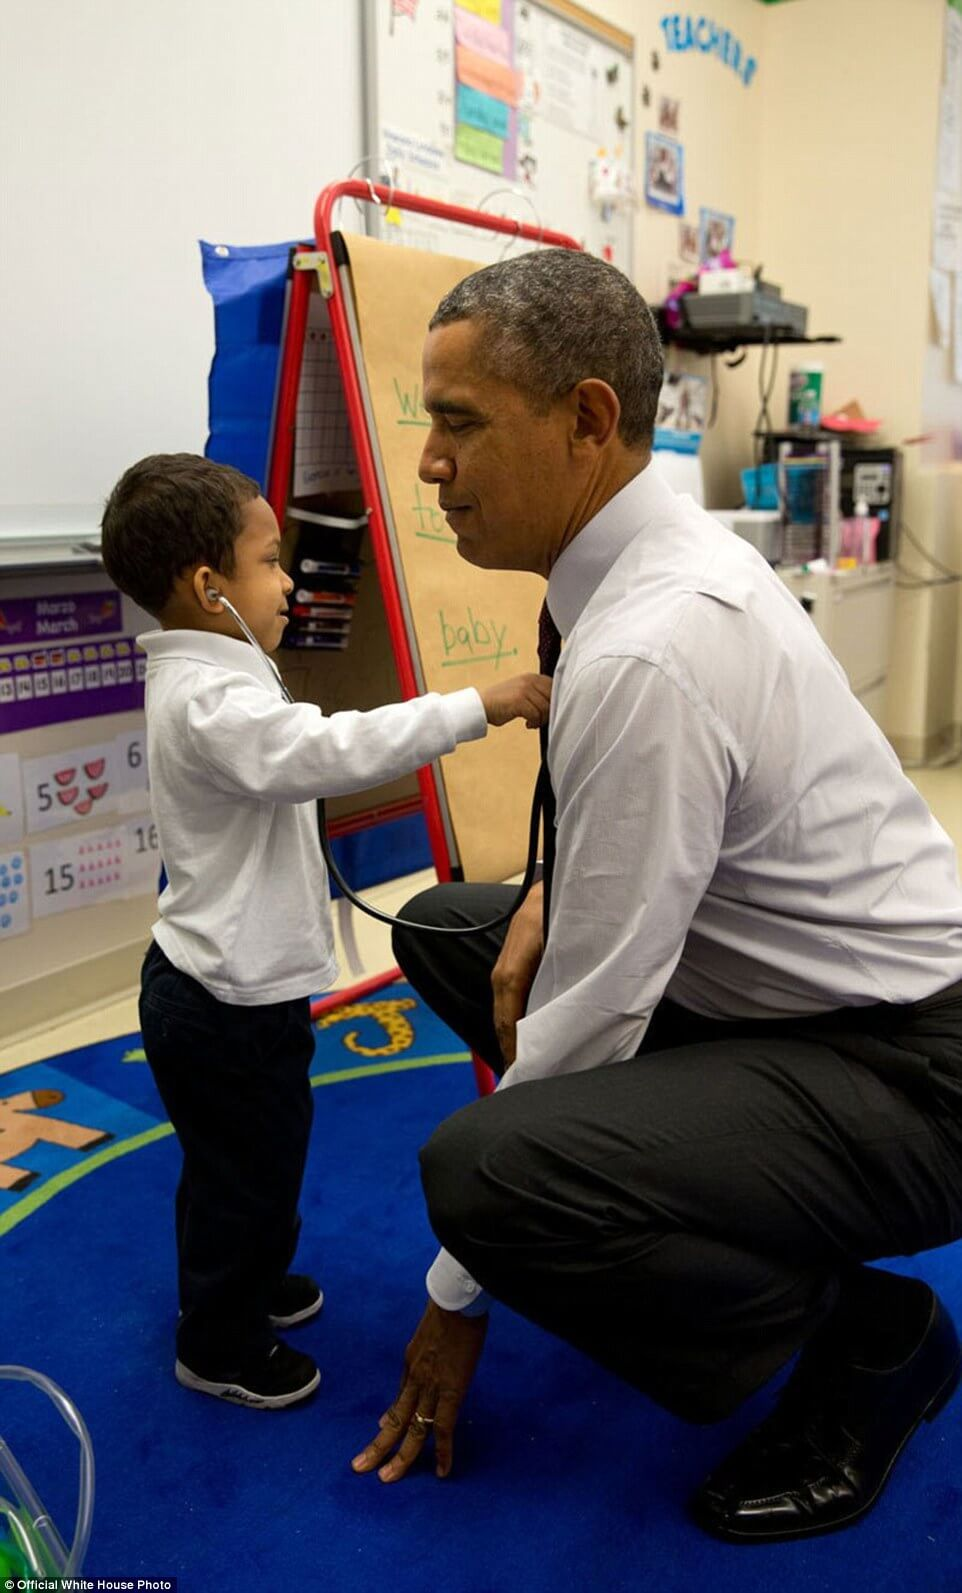 3a3f915400000578-3926100-march_4_2014_the_president_was_visiting_a_classroom_at_powell_el-a-12_1478871703570-1